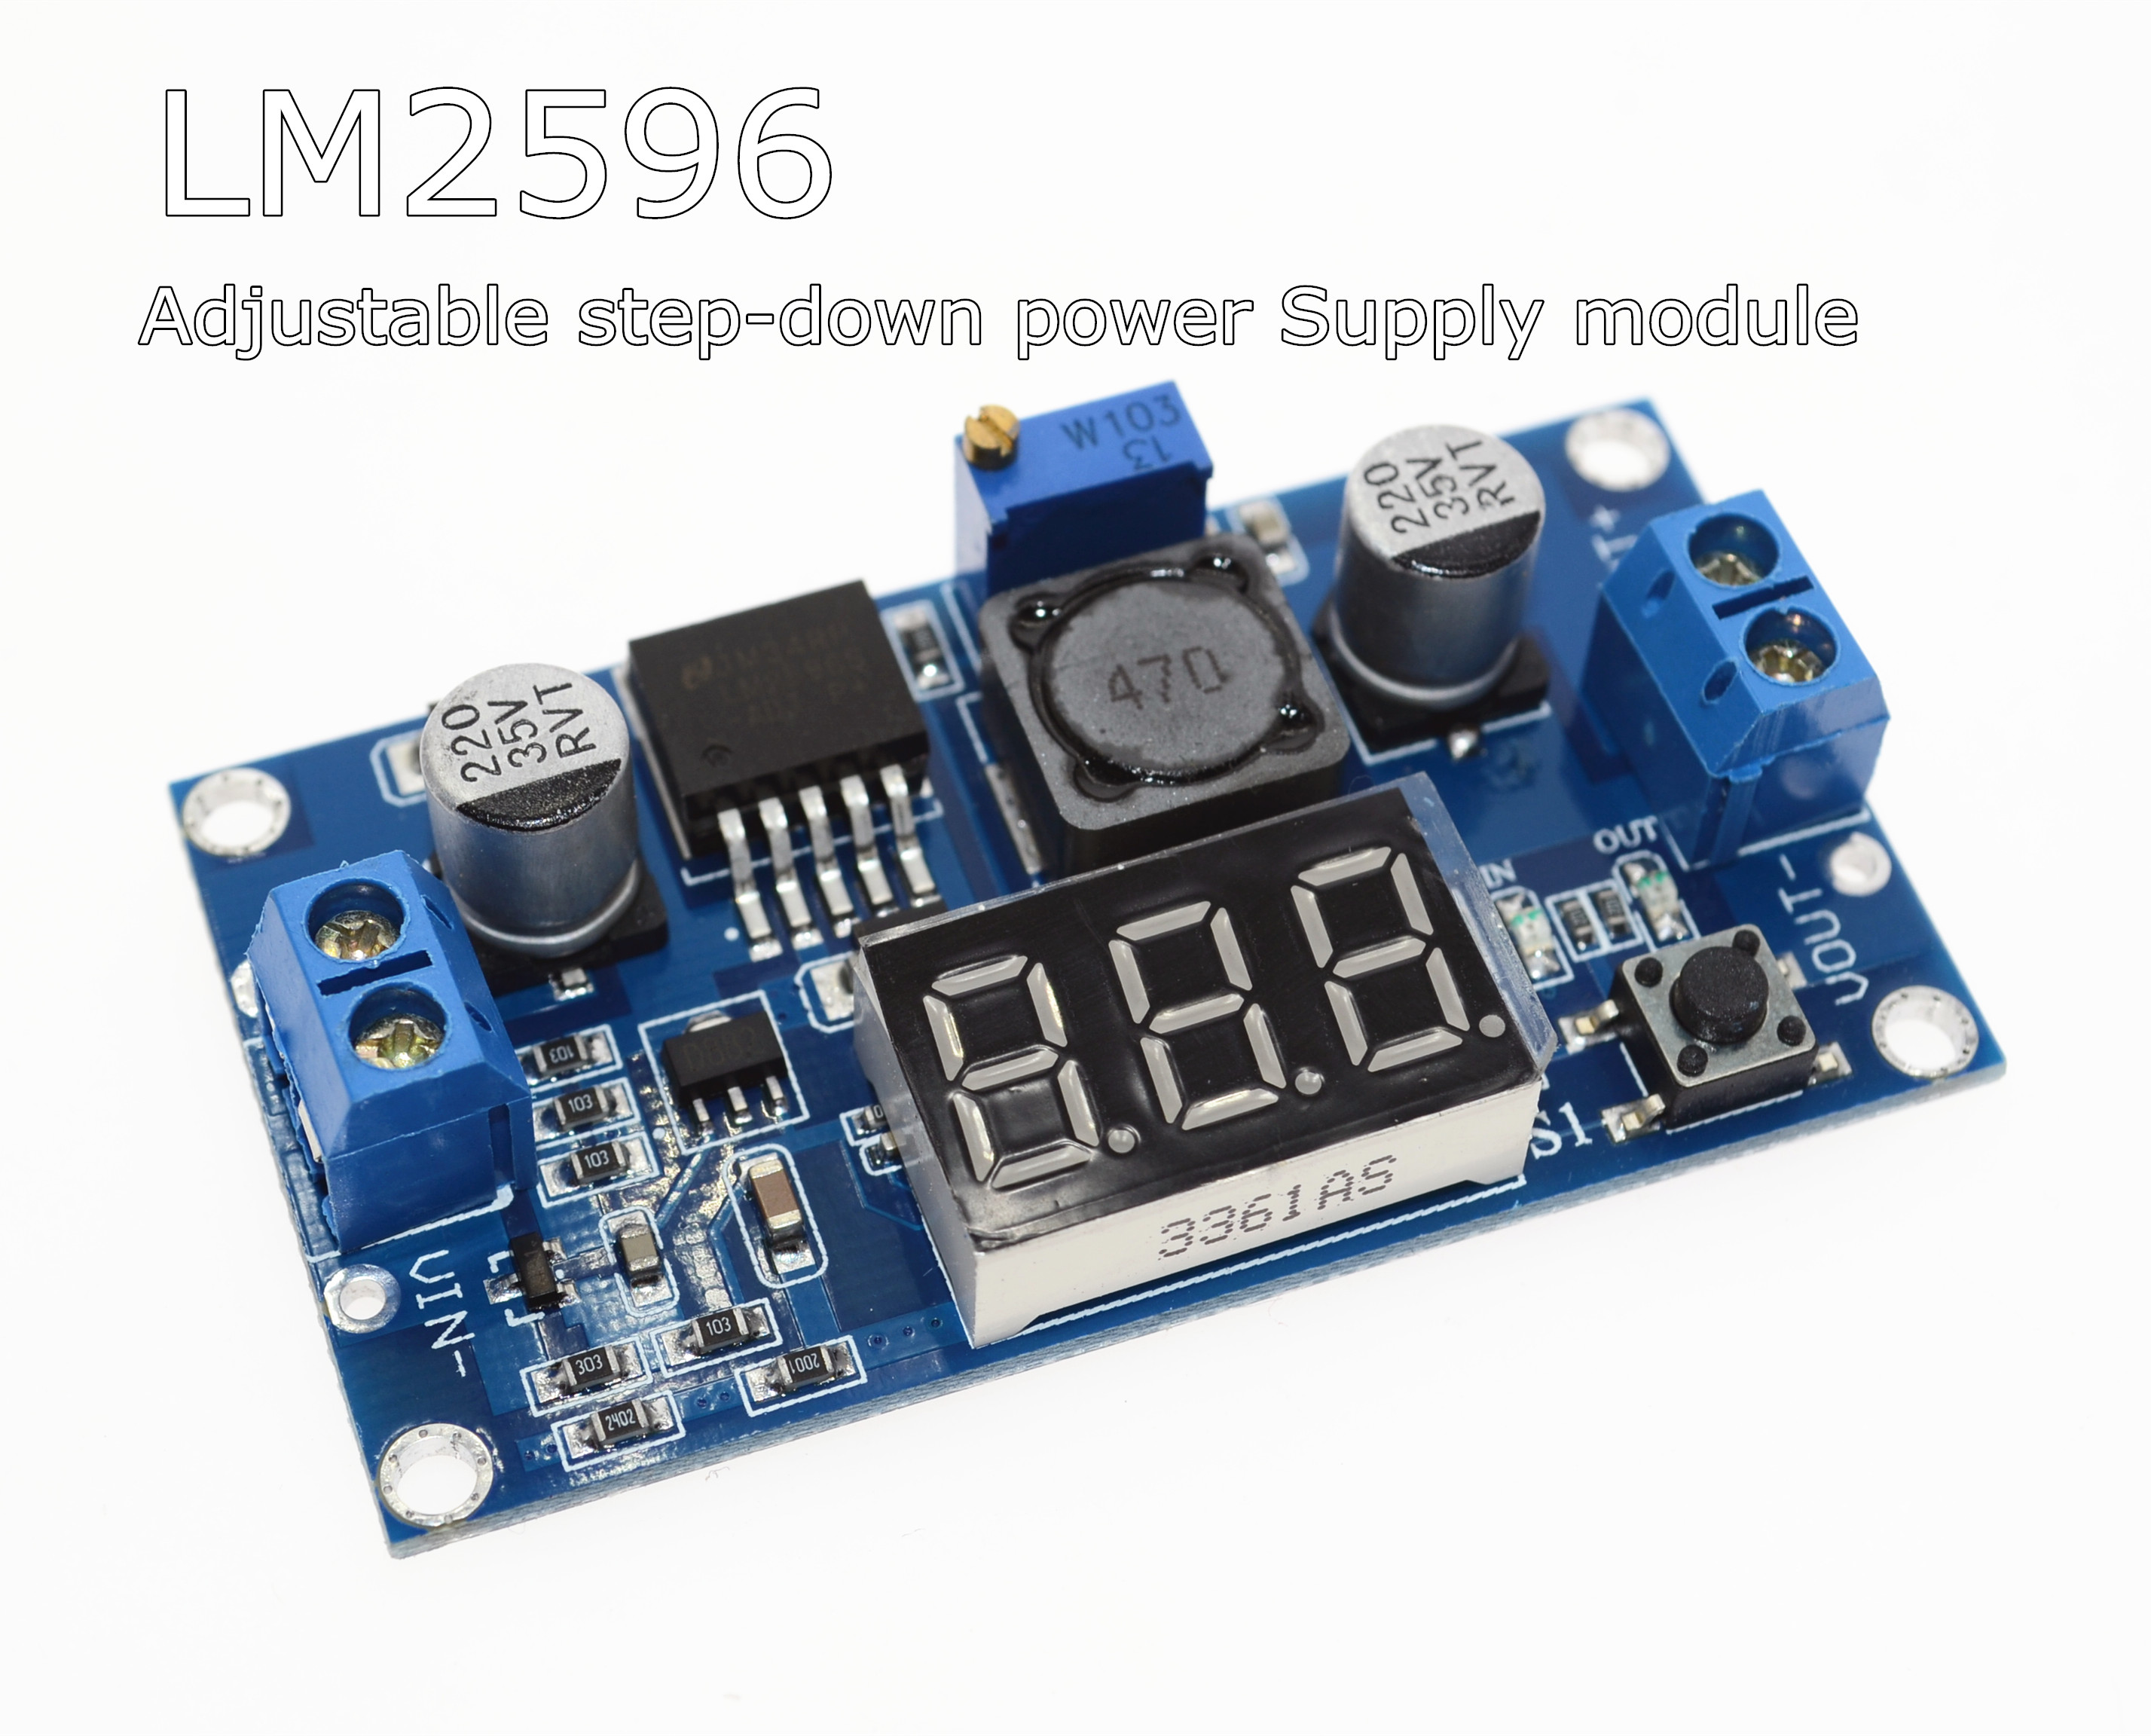 WAVGAT Store LM2596 LM2596S power module + LED Voltmeter DC-DC adjustable step-down power supply module with digital display